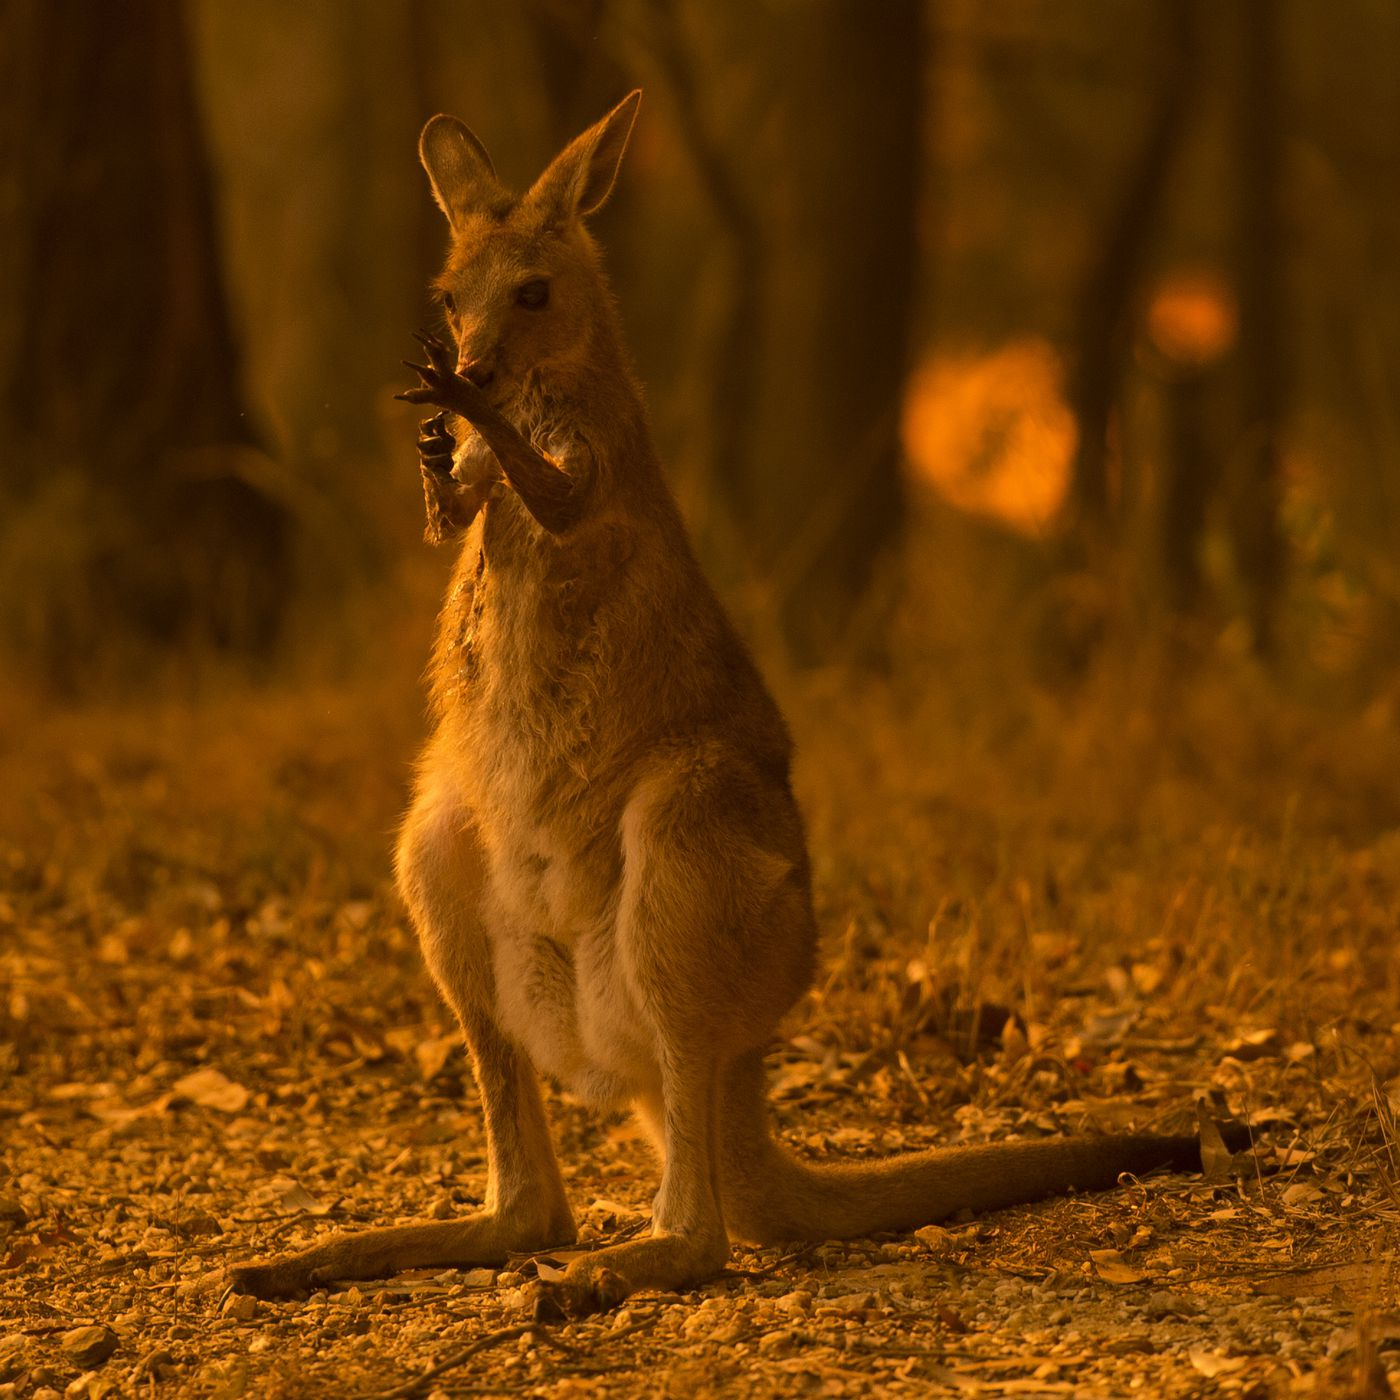 Australia fires: Why species might go extinct, explained by an ecologist -  Vox